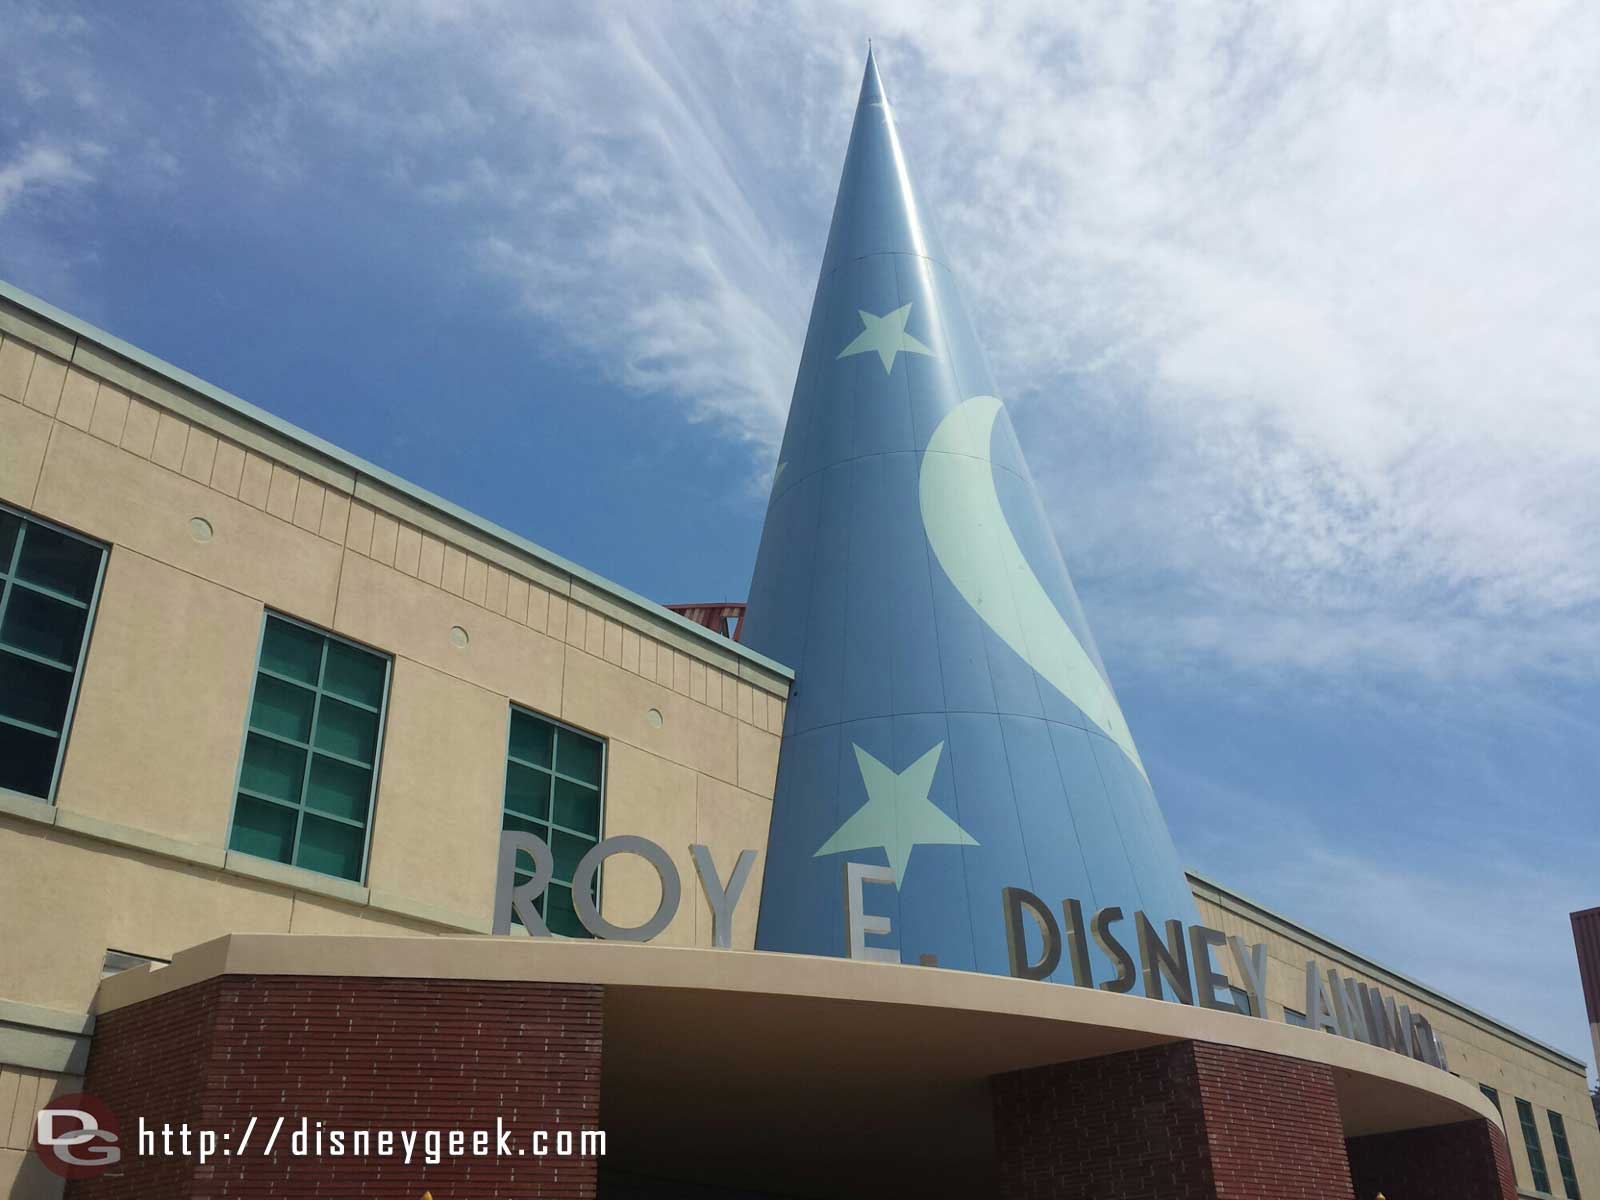 I spent the day today in the Roy E Disney Animation building learning about #BigHero6